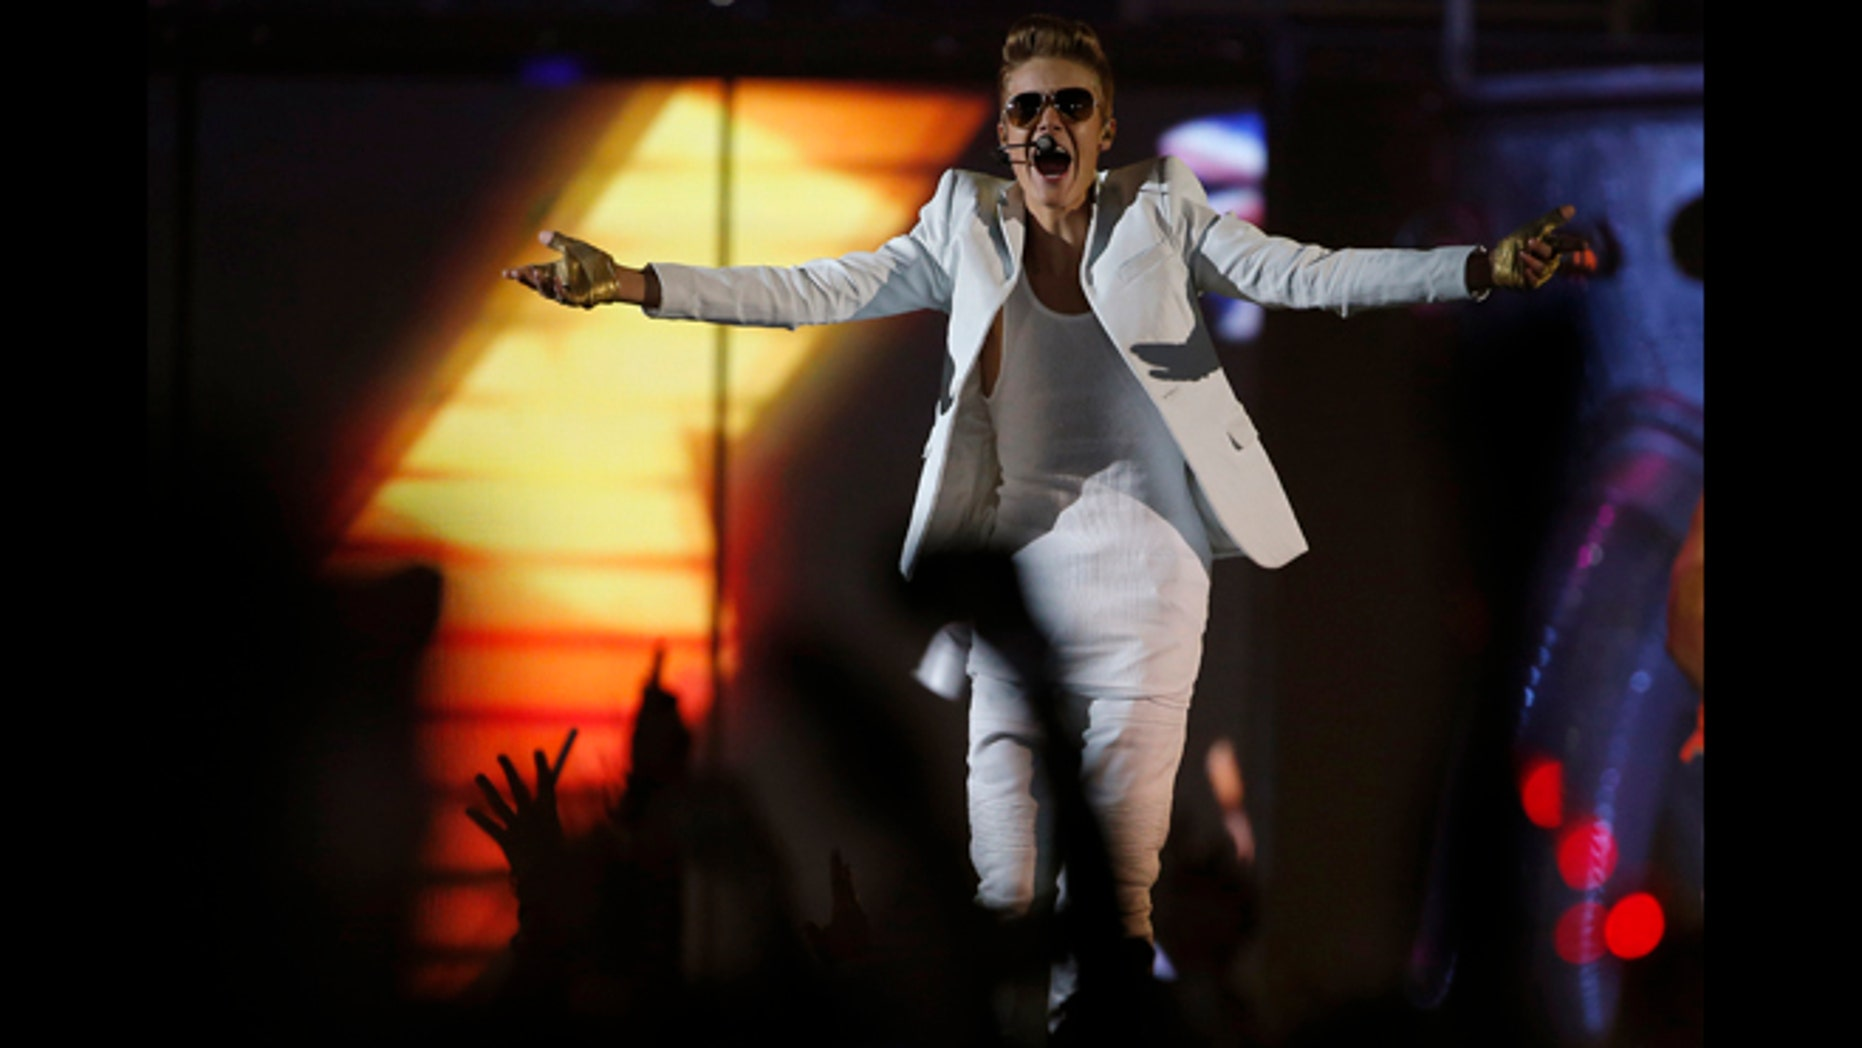 Feb. 21, 2013: Canadian singer Justin Bieber performs in a concert at the Manchester Arena in Manchester, northern England.